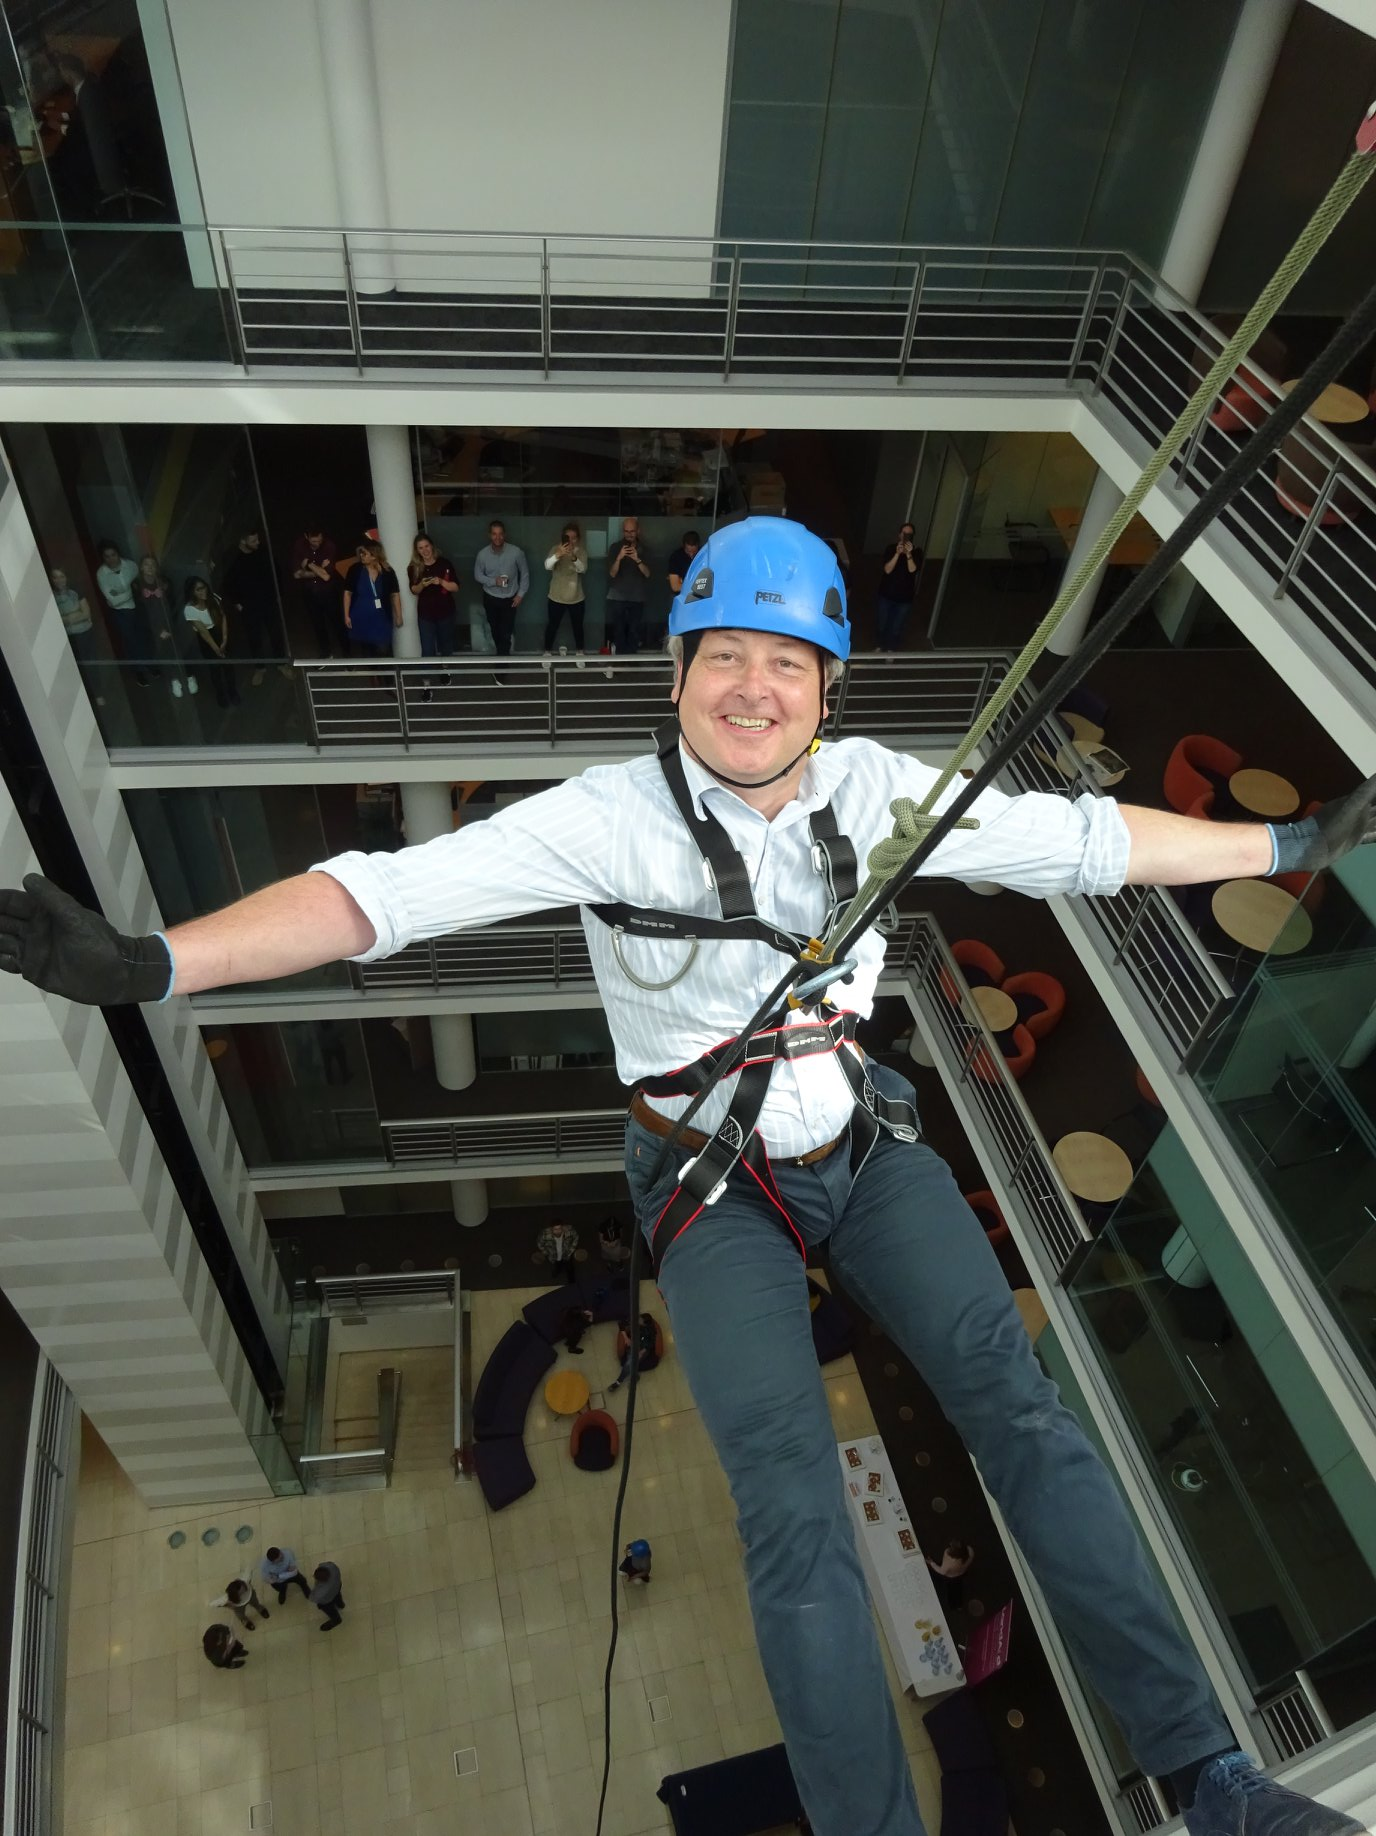 Indoor Charity abseiling event